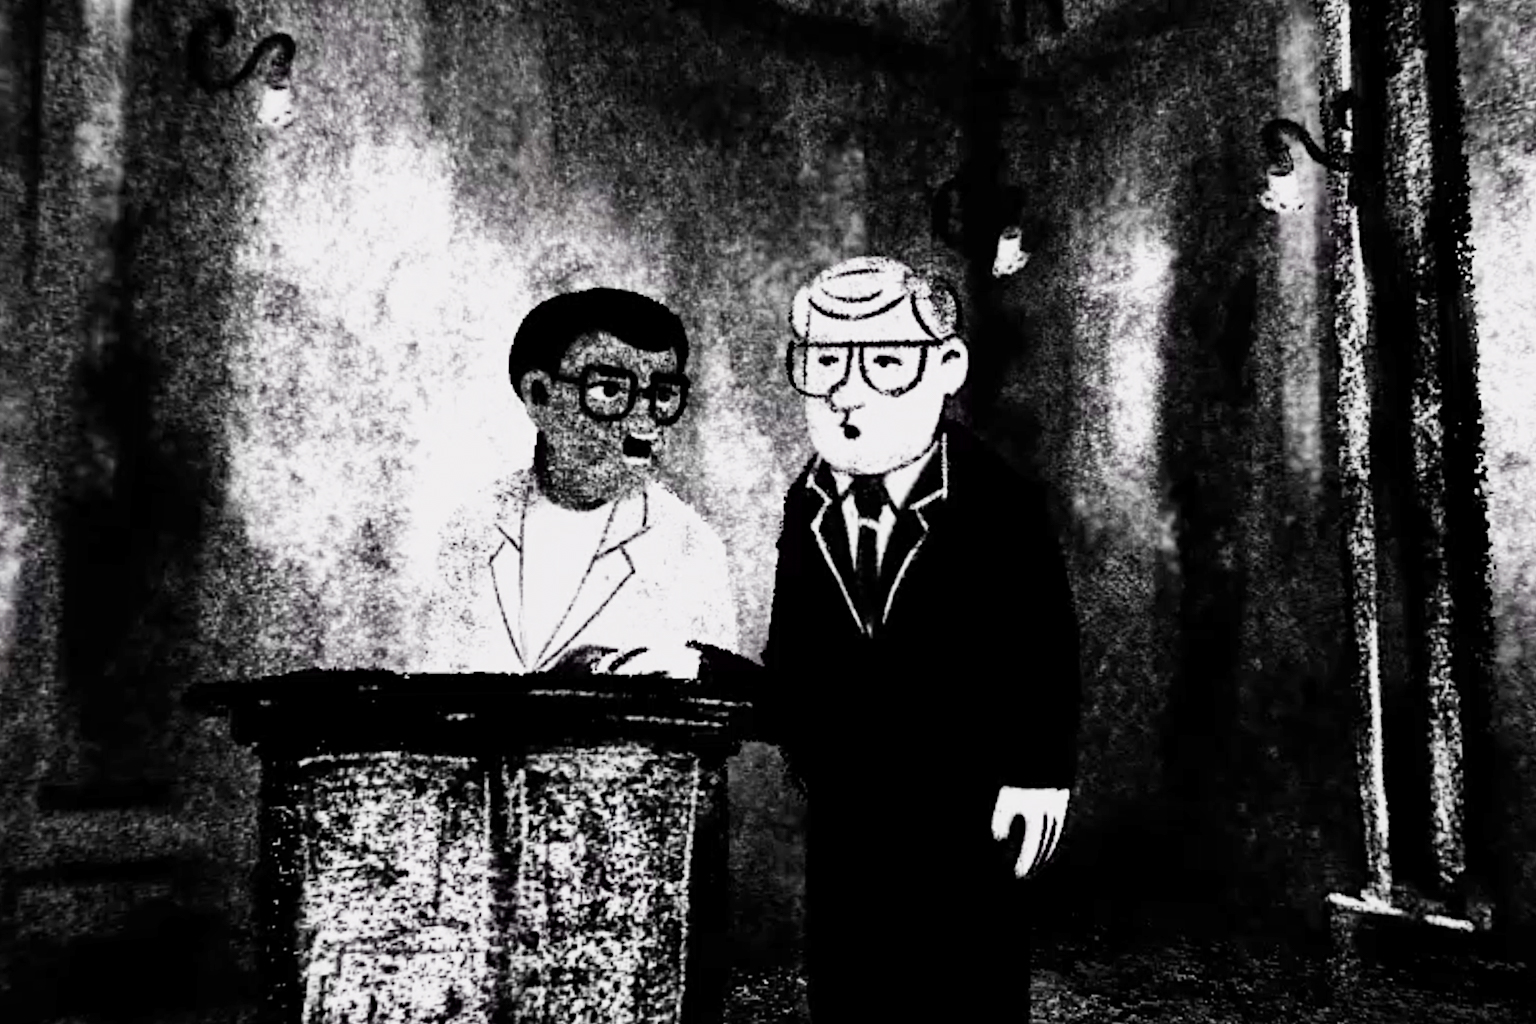 Animation artist Oerd van Cuijlenborg's drawings used in the virtual reality film #Accused 2: Walter Sisulu take the viewer into the Palace of Justice in 1963 and 1964. Here he depicts Walter Sisulu answering questions by defence lawyer Bram Fischer.